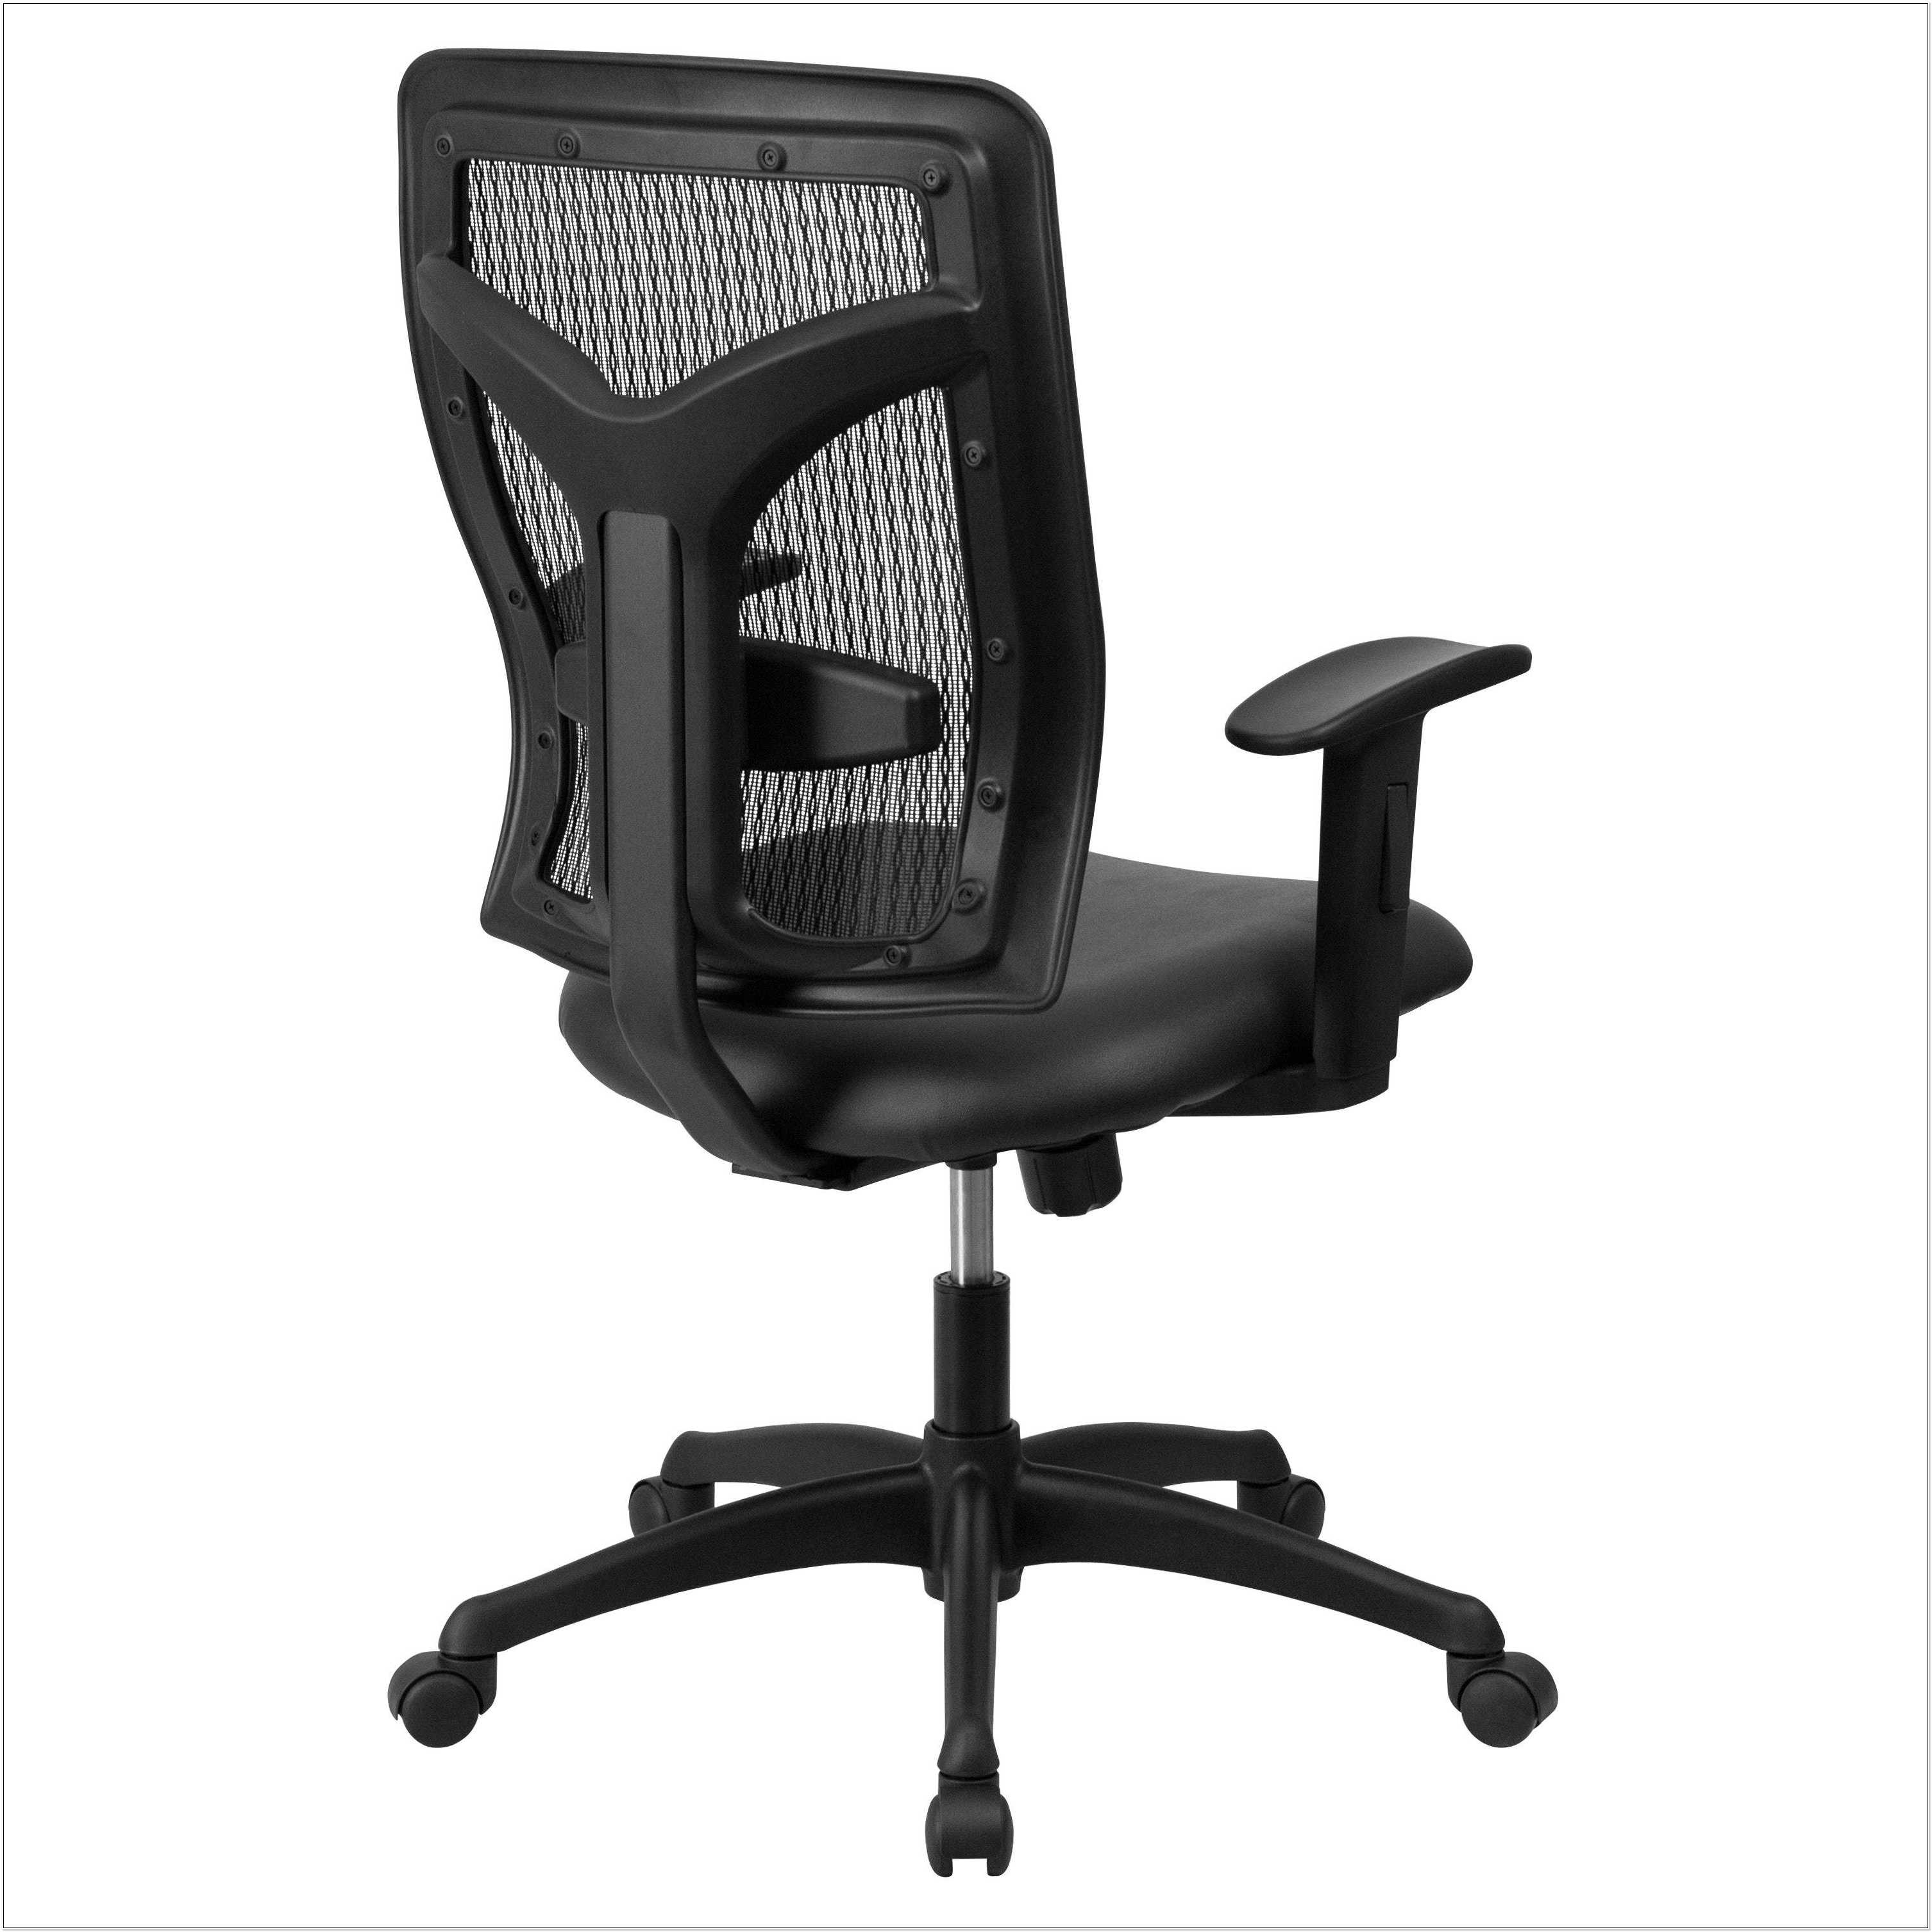 Novimex Ergonomic Adjustable Task Chair